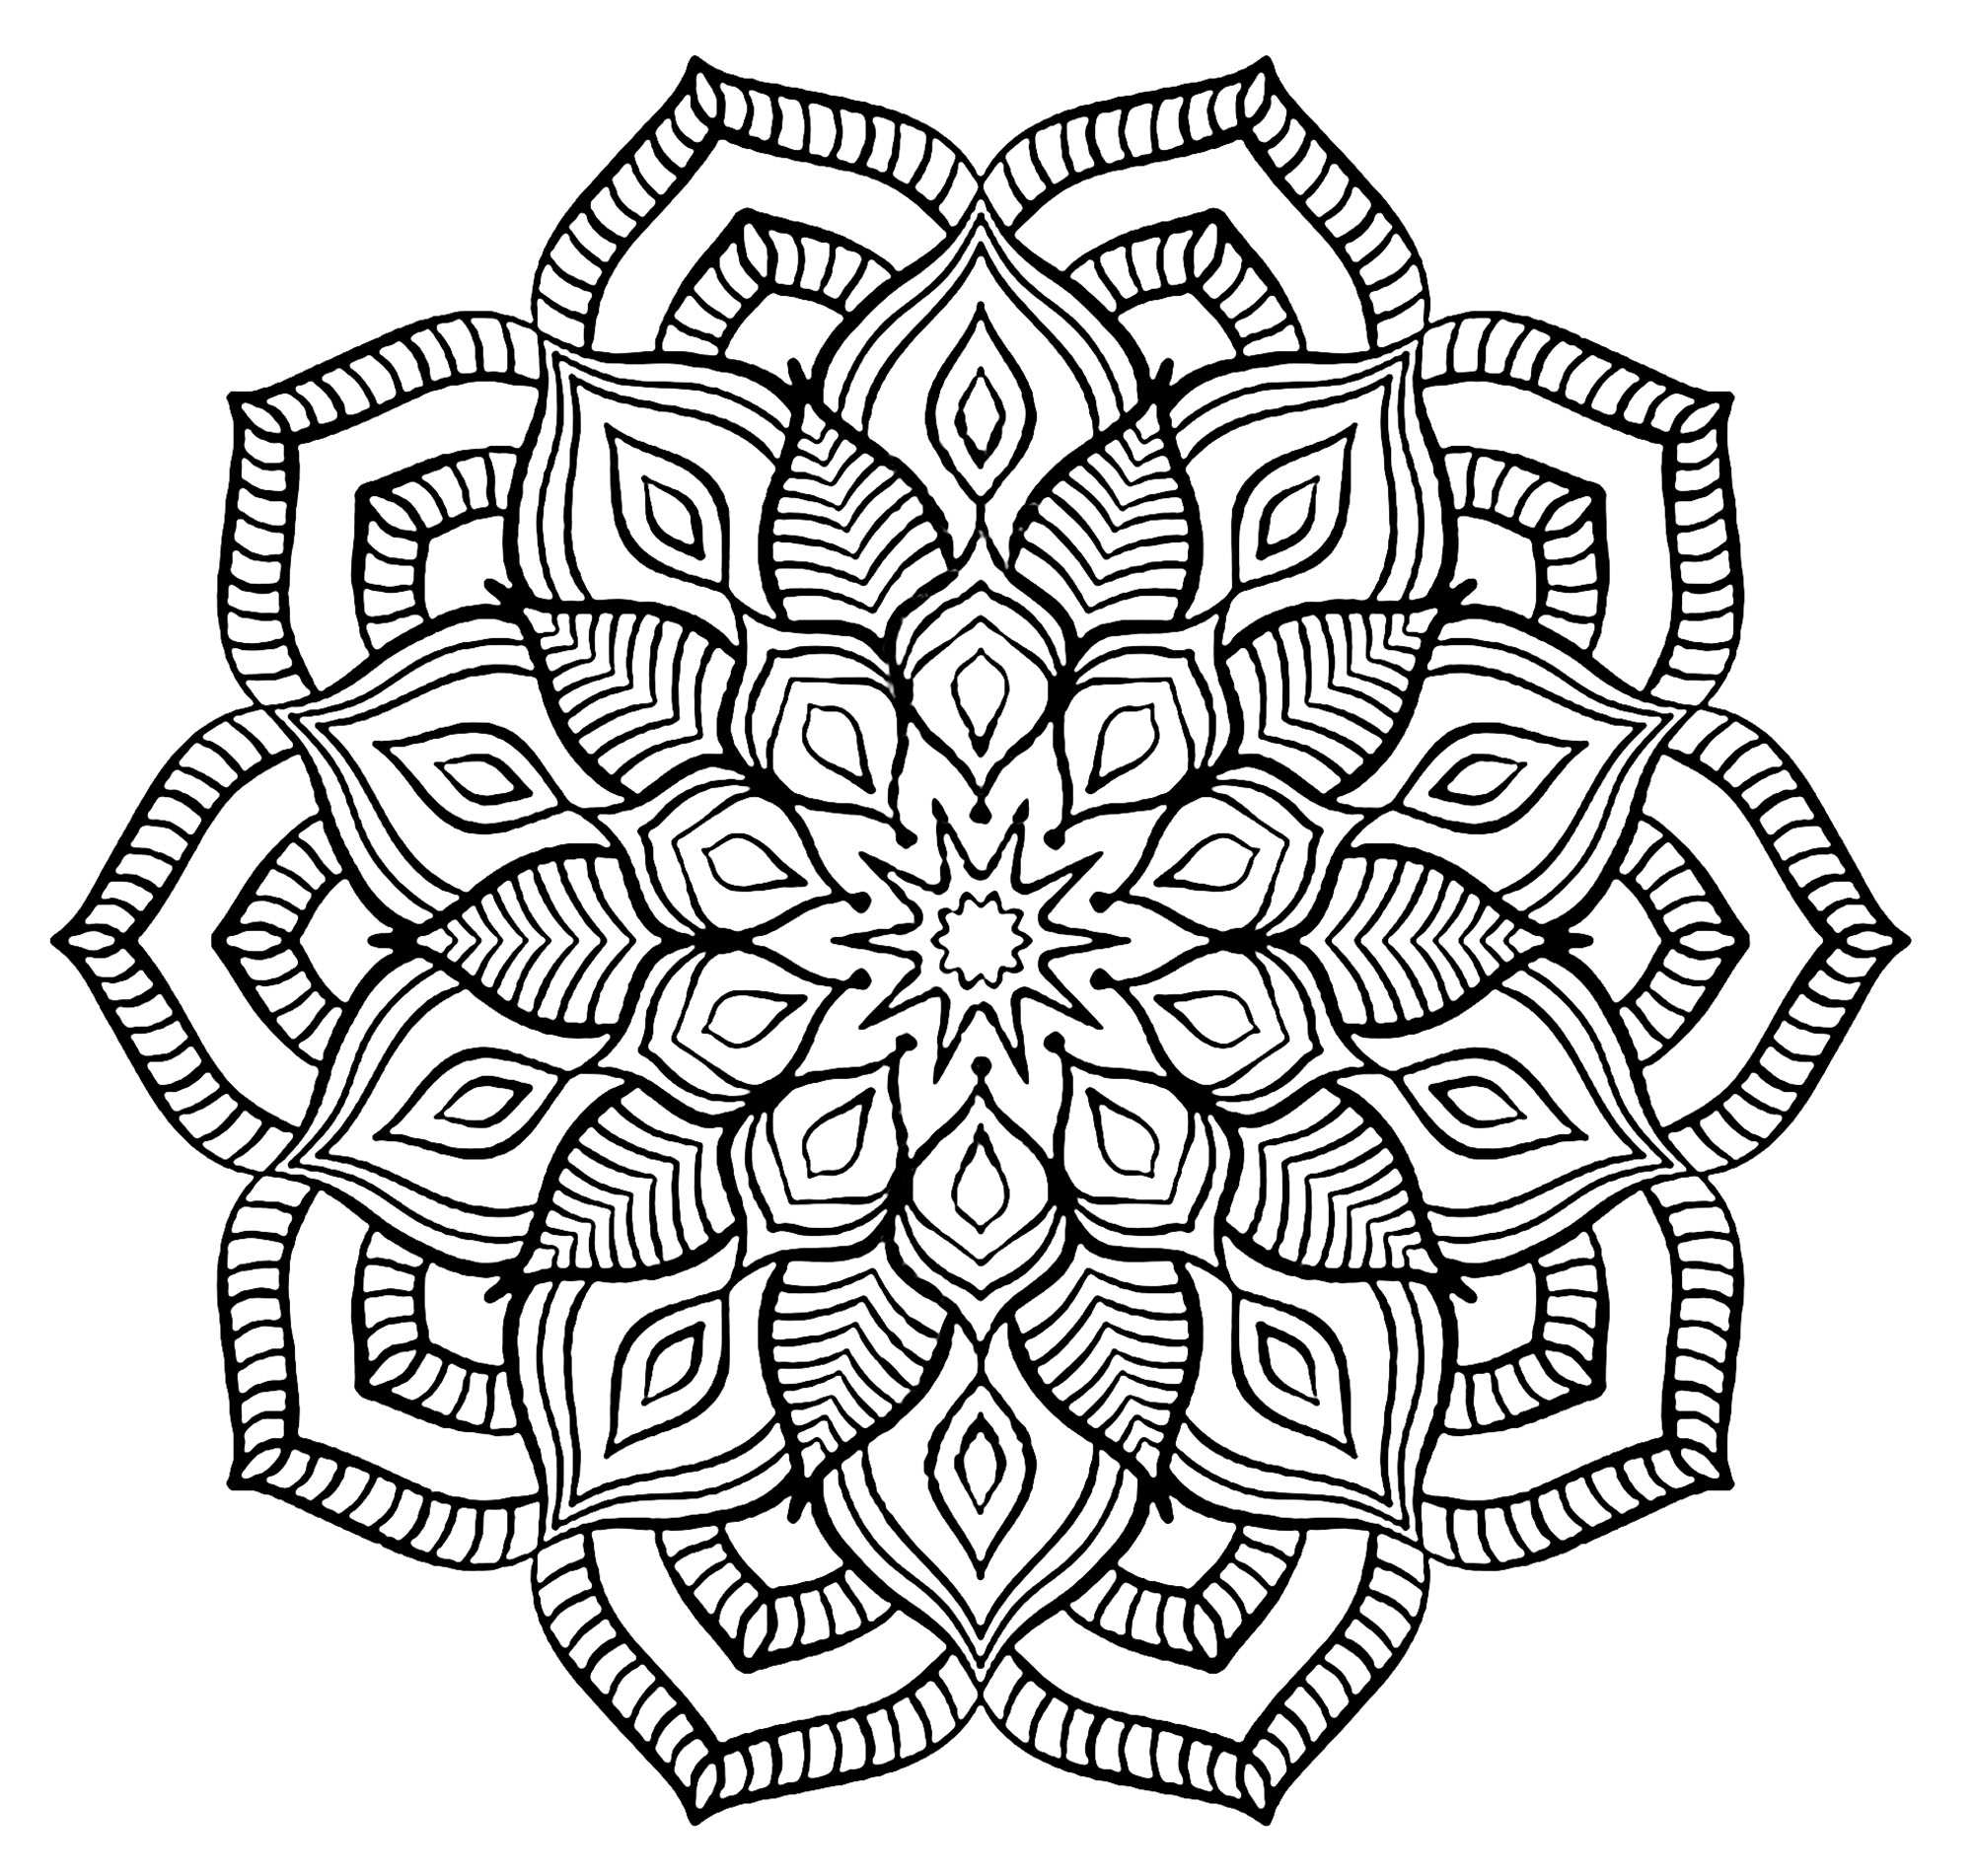 Mandalas to color for kids - Mandalas - Free printable Coloring ...